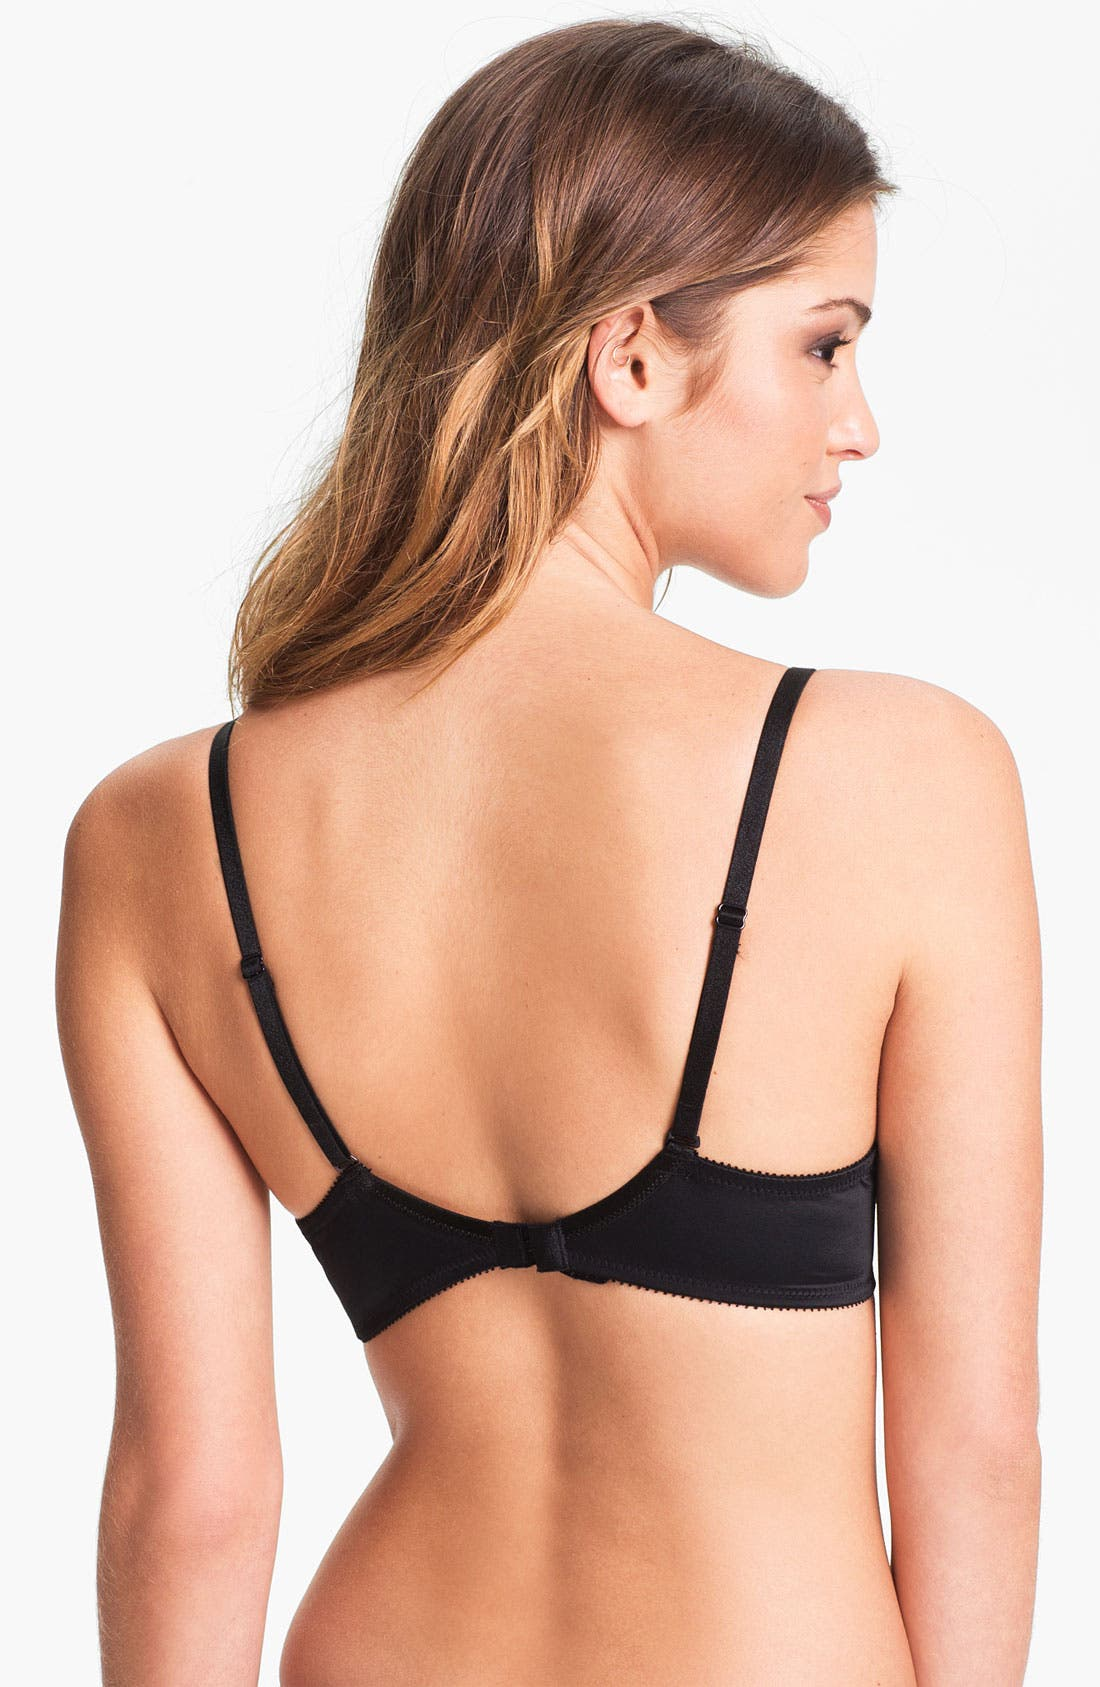 Alternate Image 2  - Chantelle Intimates 'Basic Invisible' Underwire Push-Up Plunge Bra